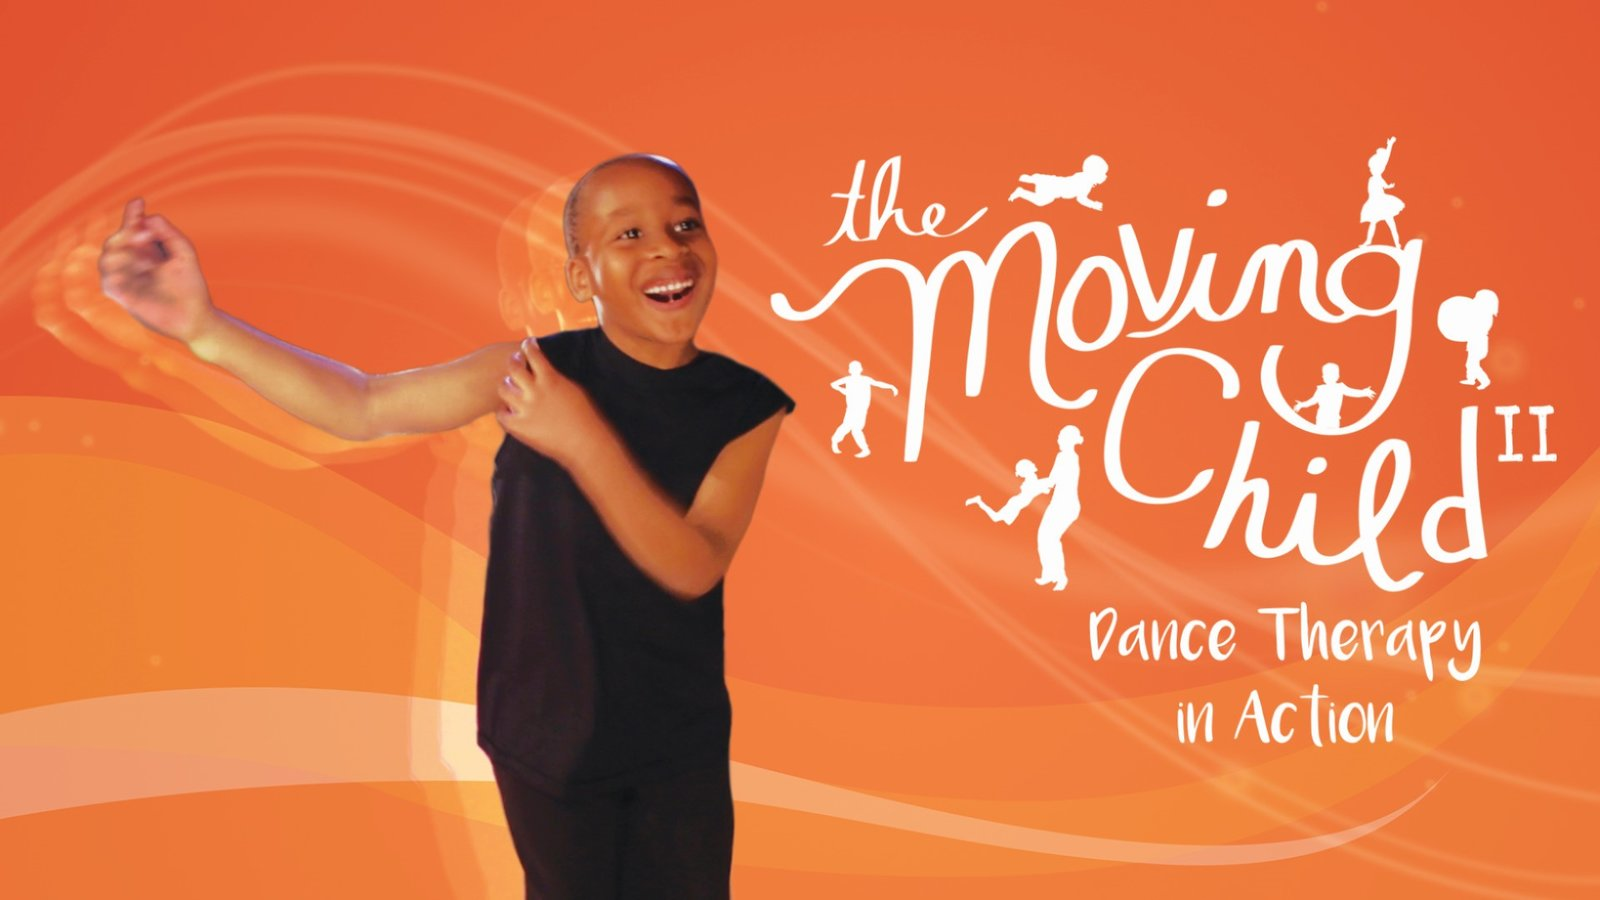 Moving Child Films II